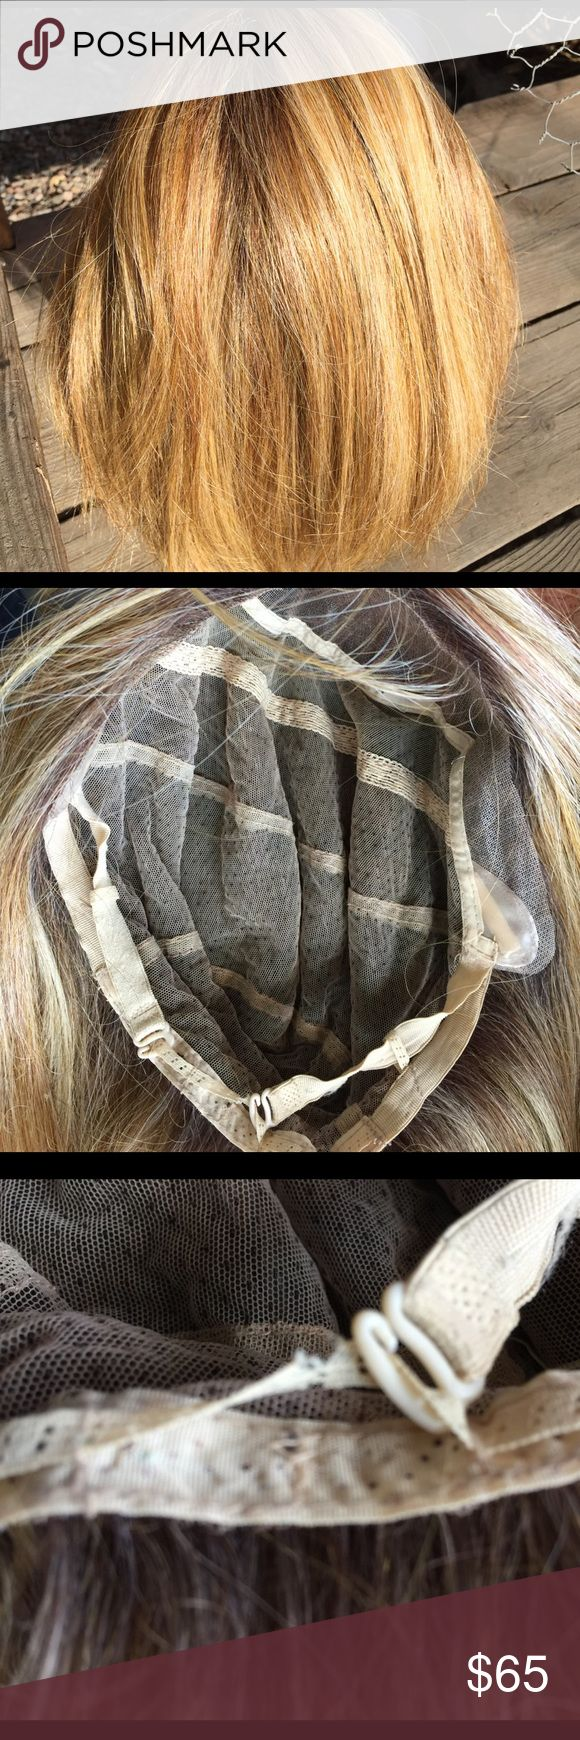 Hand tied wig This is a 100% hand tied wig  it is a bob cut front lace. The part where it hooks in is a little loose but can be sewn. There is a close up of that area it isn't anything drastic nothing that can't be fixed yourself if u can sew.  Aside from that it's in good shape Accessories Hair Accessories